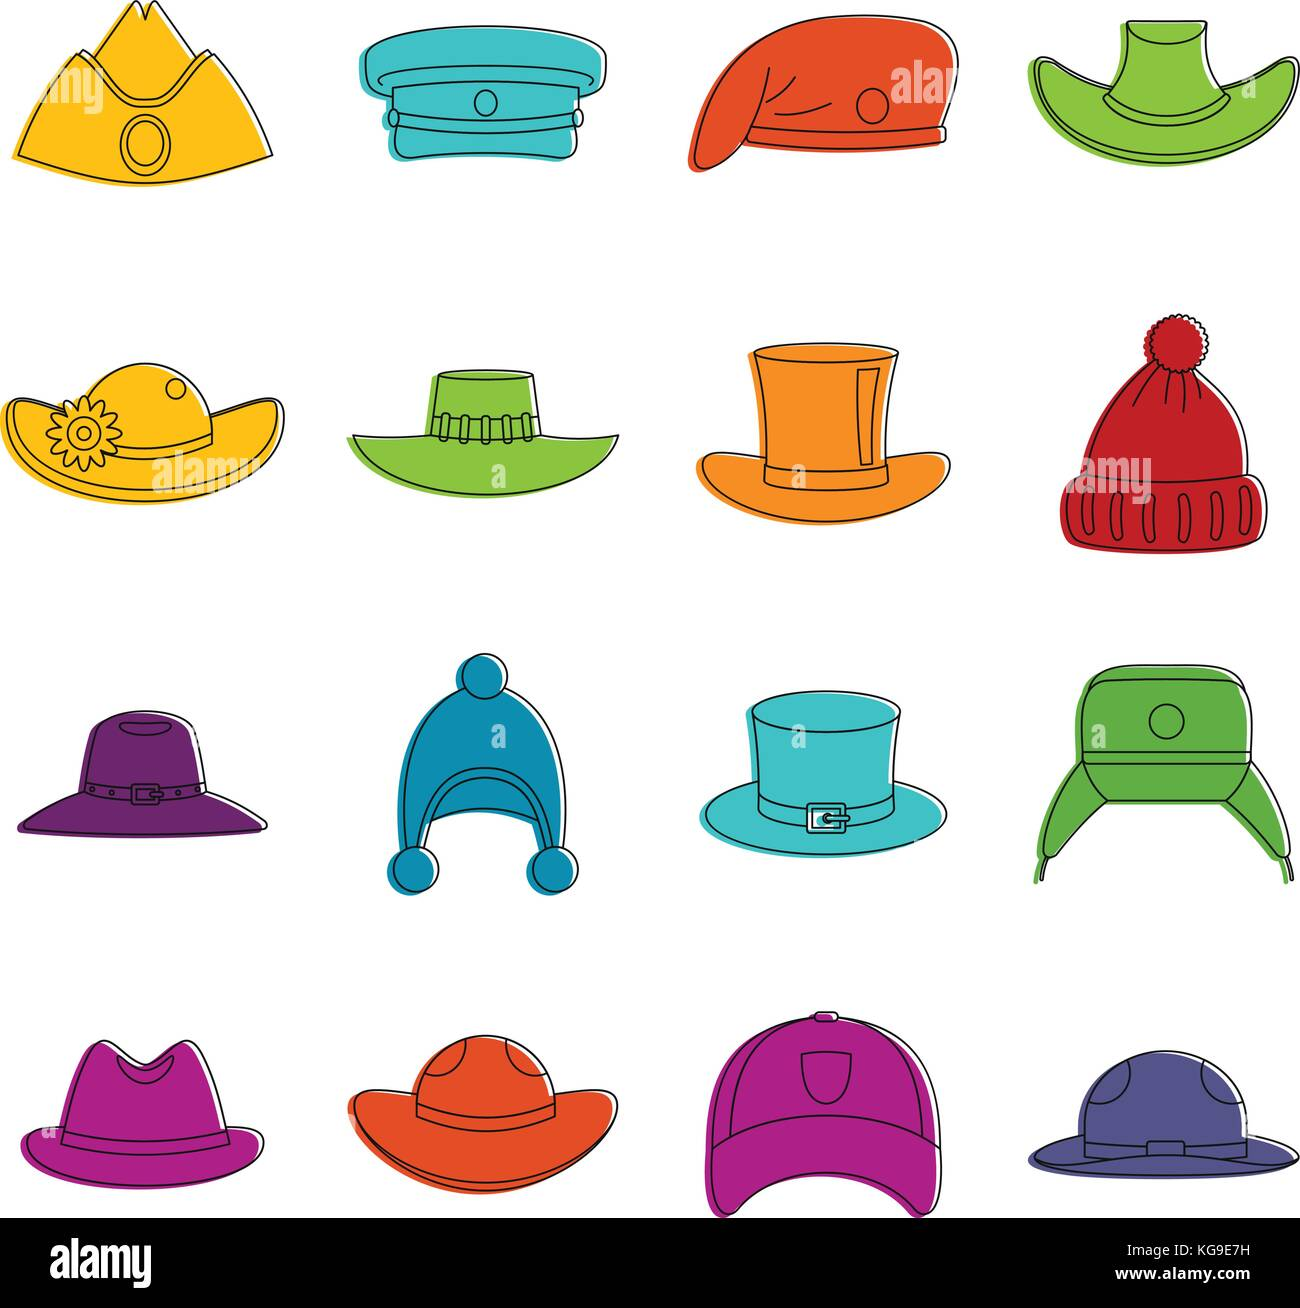 Headdress hat icons doodle set - Stock Image